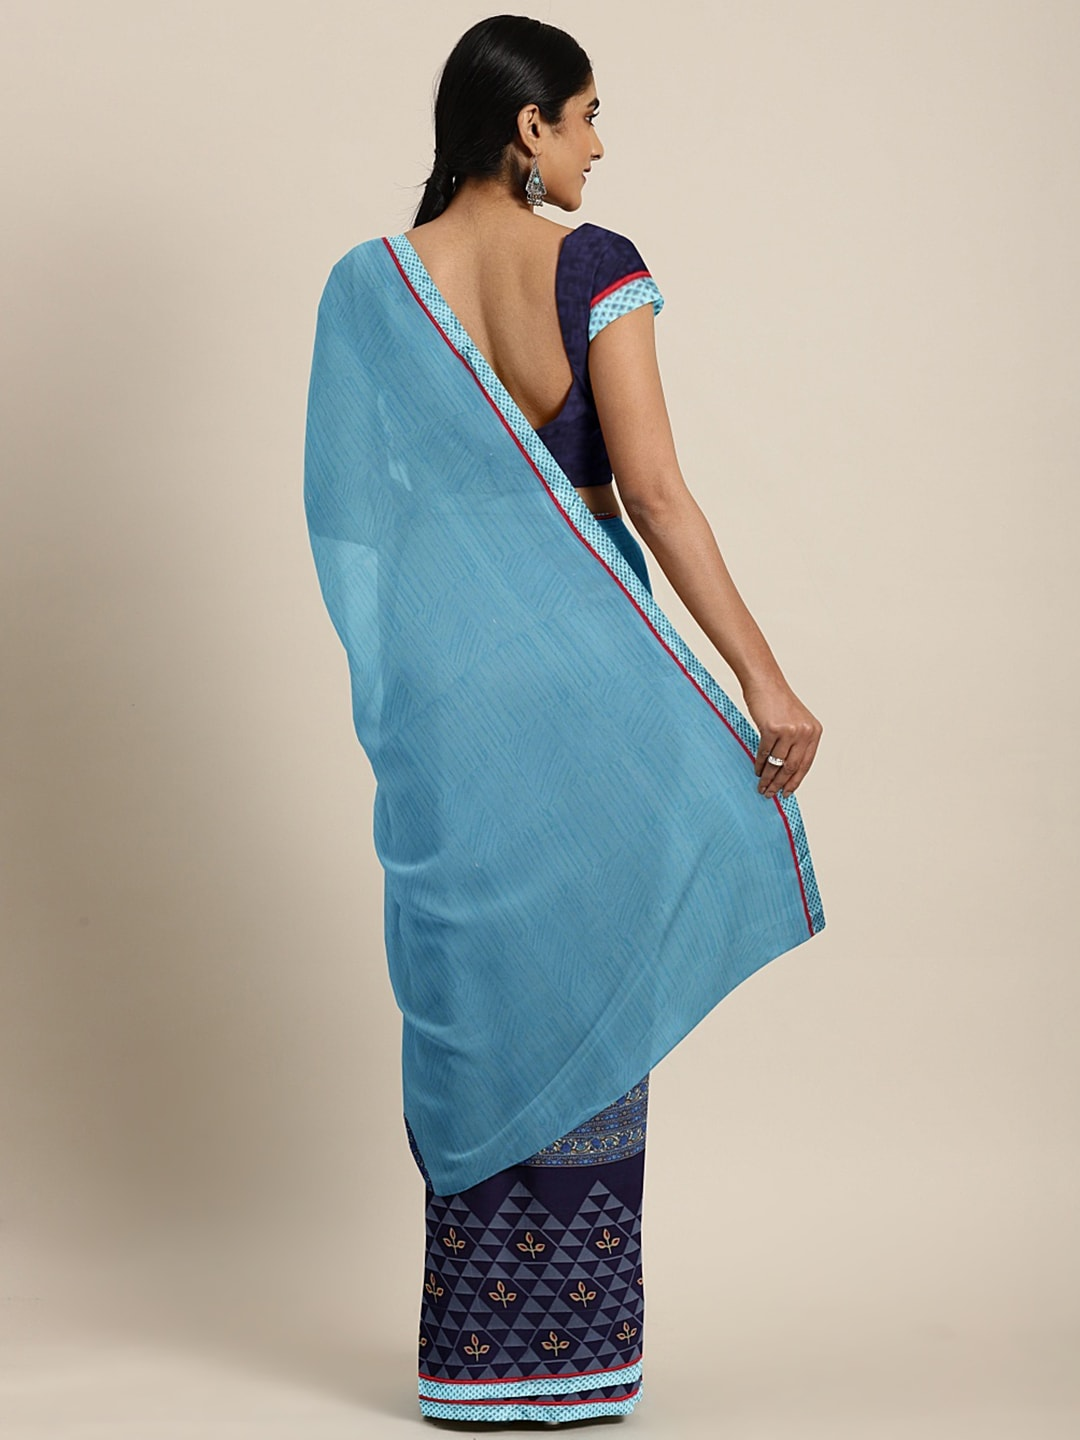 Triveni Blue Solid Poly Georgette Saree